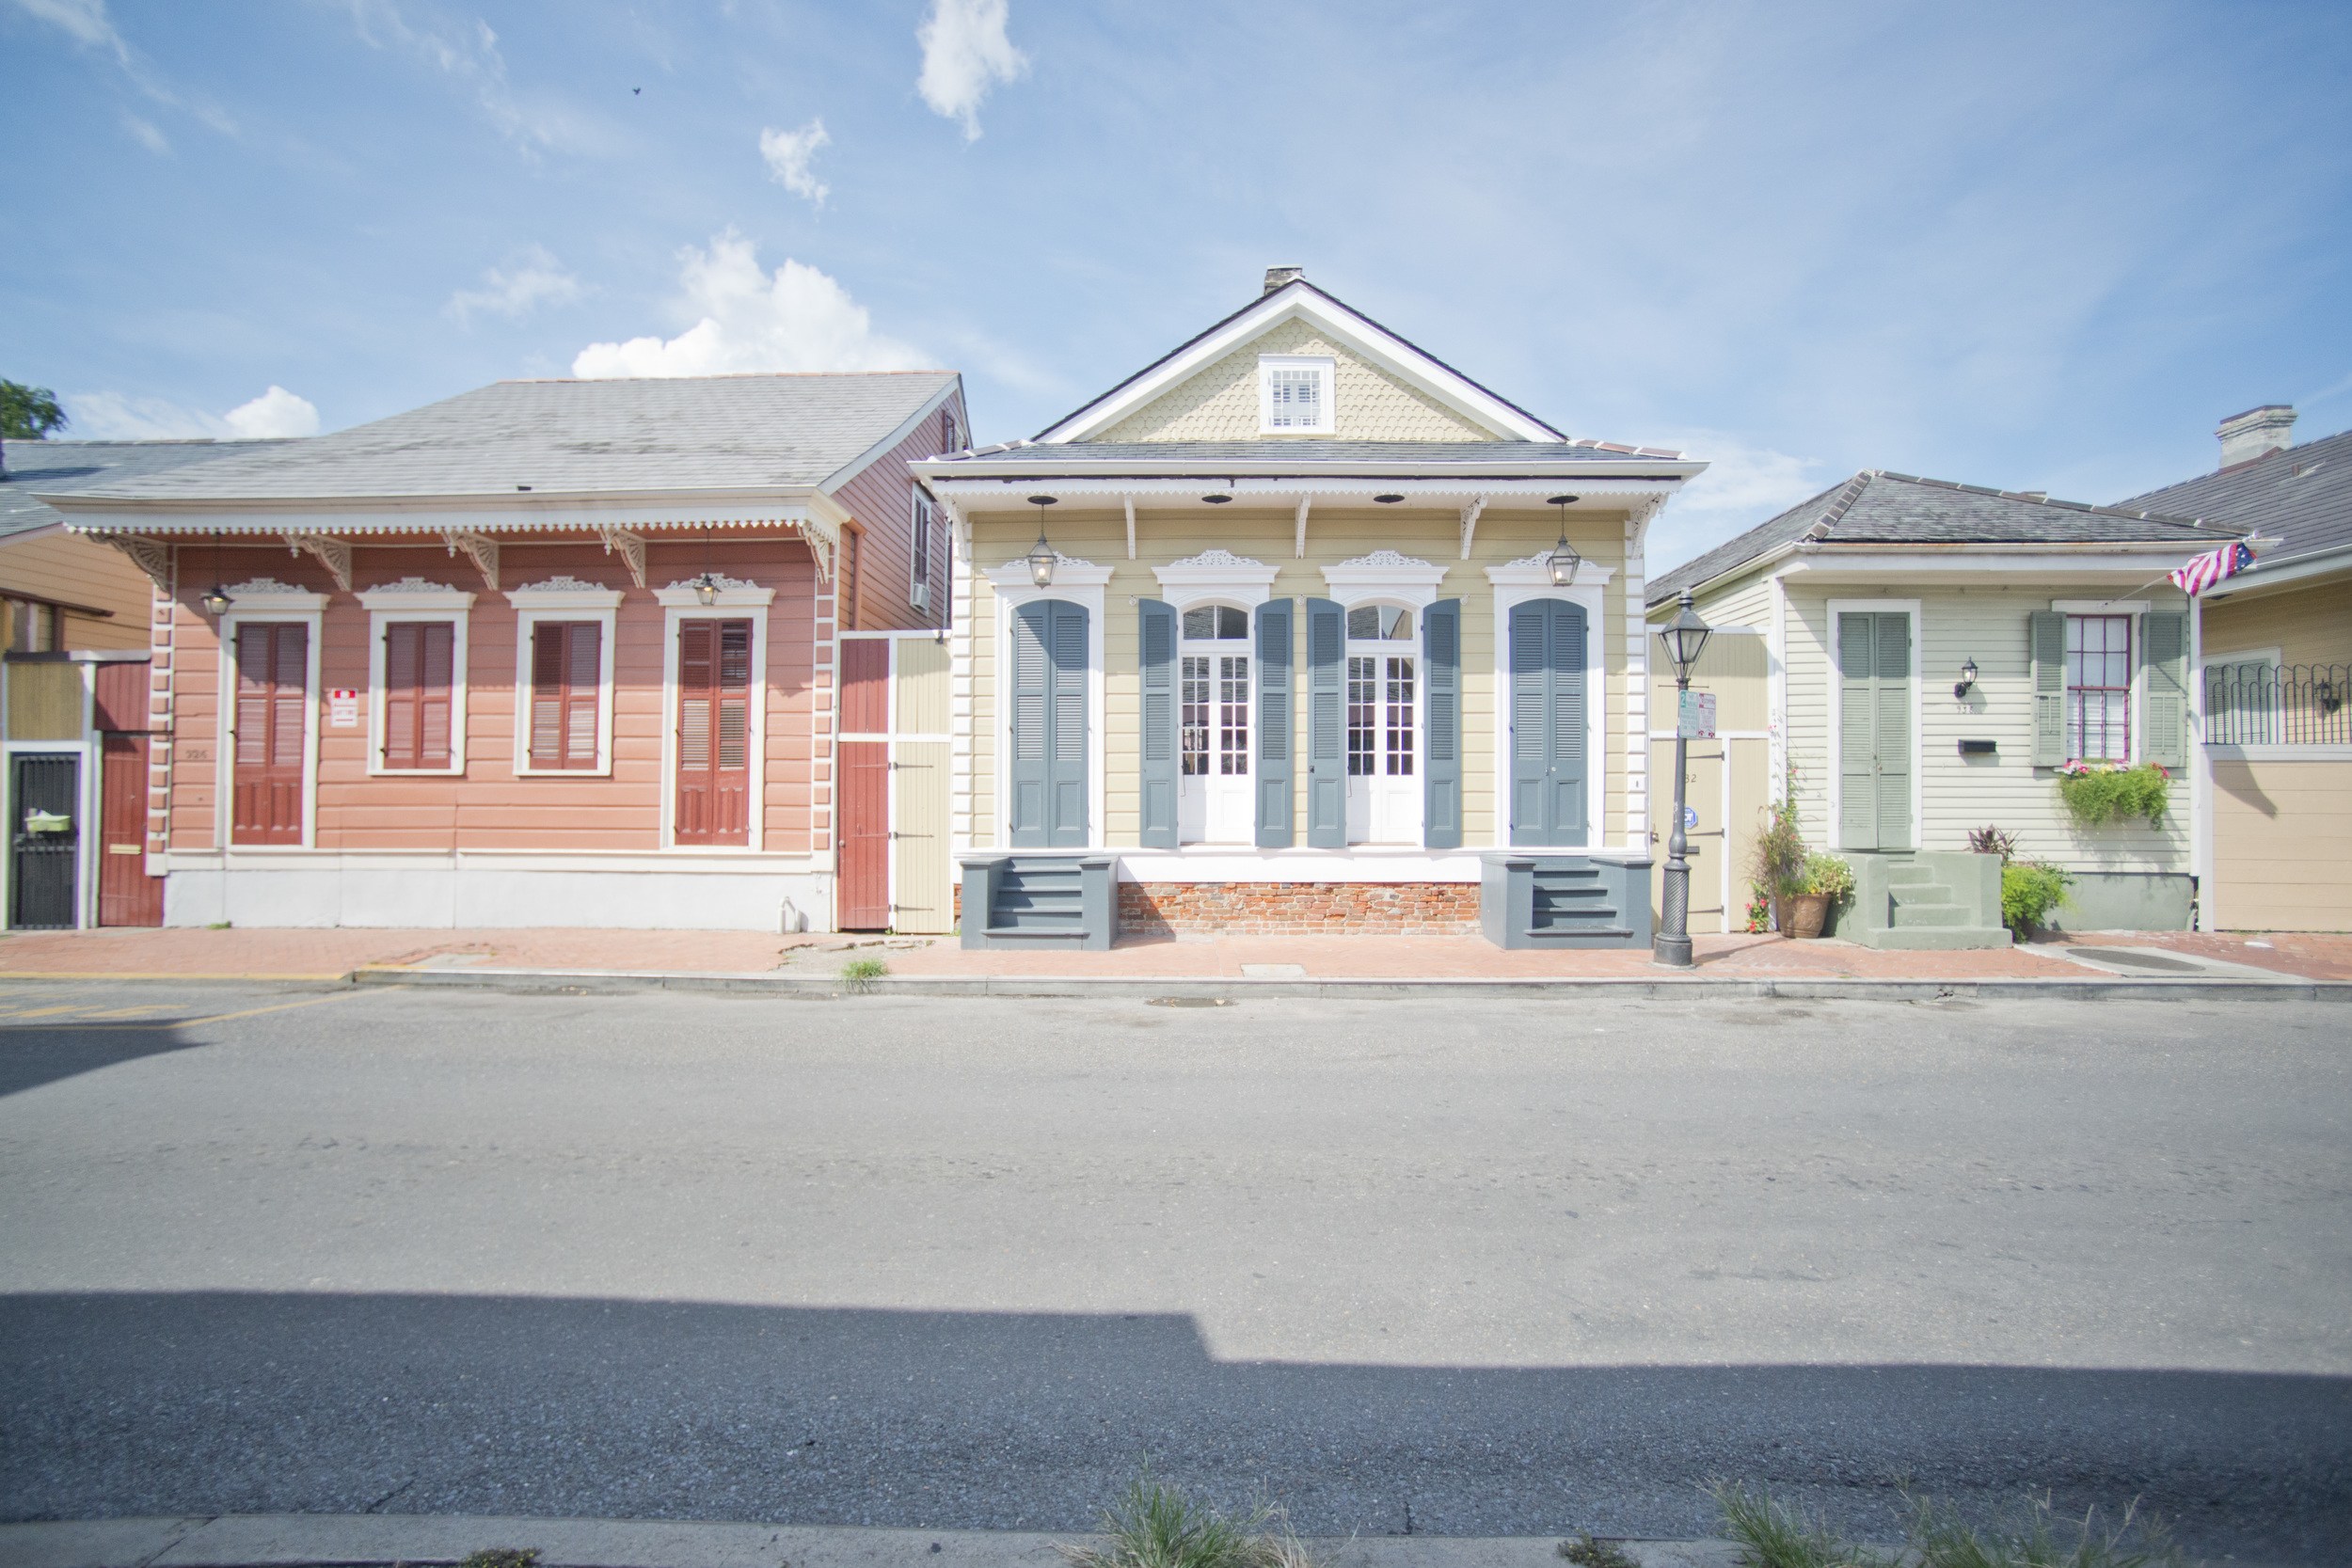 Design Guidelines for the Vieux Carre Historic District